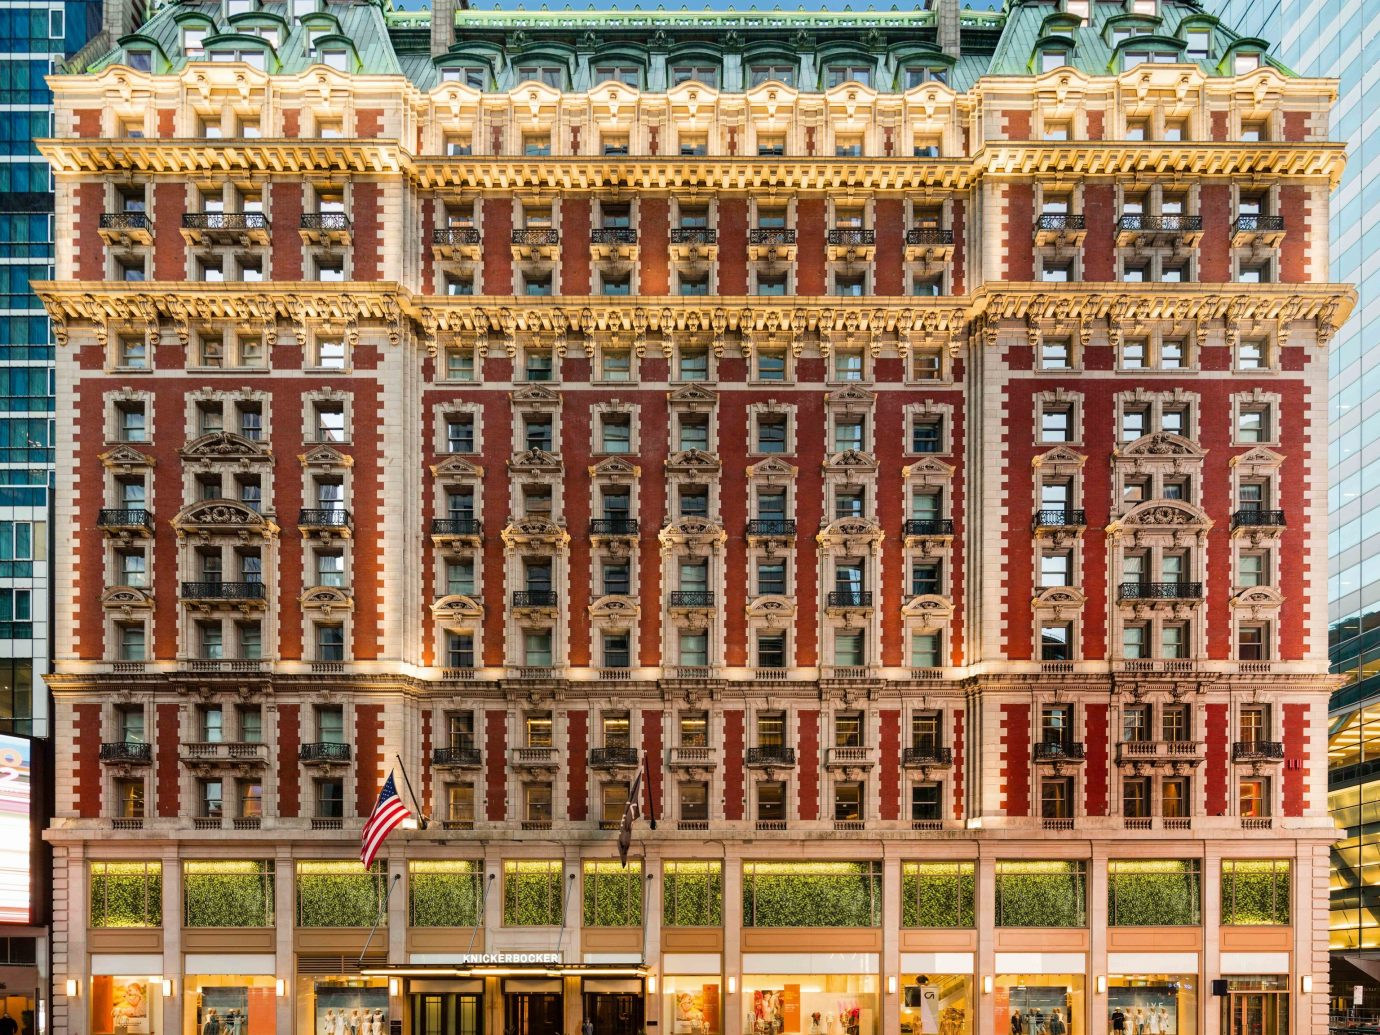 Boutique Hotels Food + Drink Hotels landmark building facade classical architecture metropolis City window plaza palace